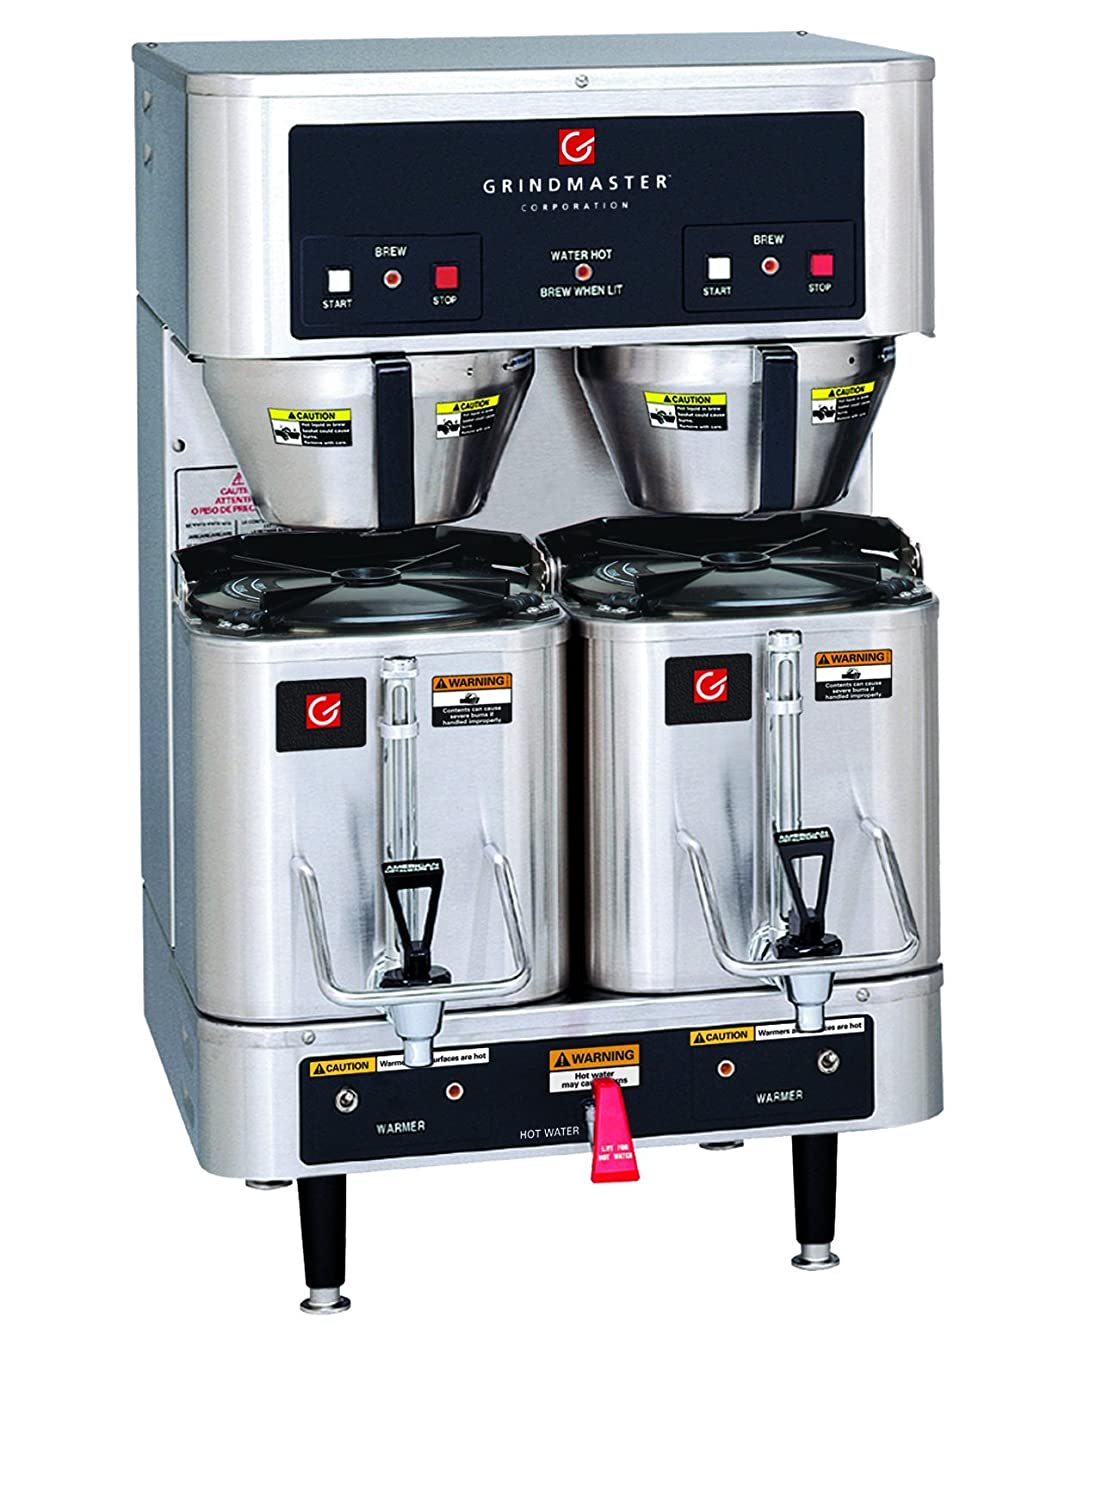 Grindmaster-Cecilware P400E 120/208 volt Dual Shuttle Brewer with 2 CS-LL Shuttle, 1.5-Gallon, Stainless Steel 71vvW6S9s9L._SL1500_